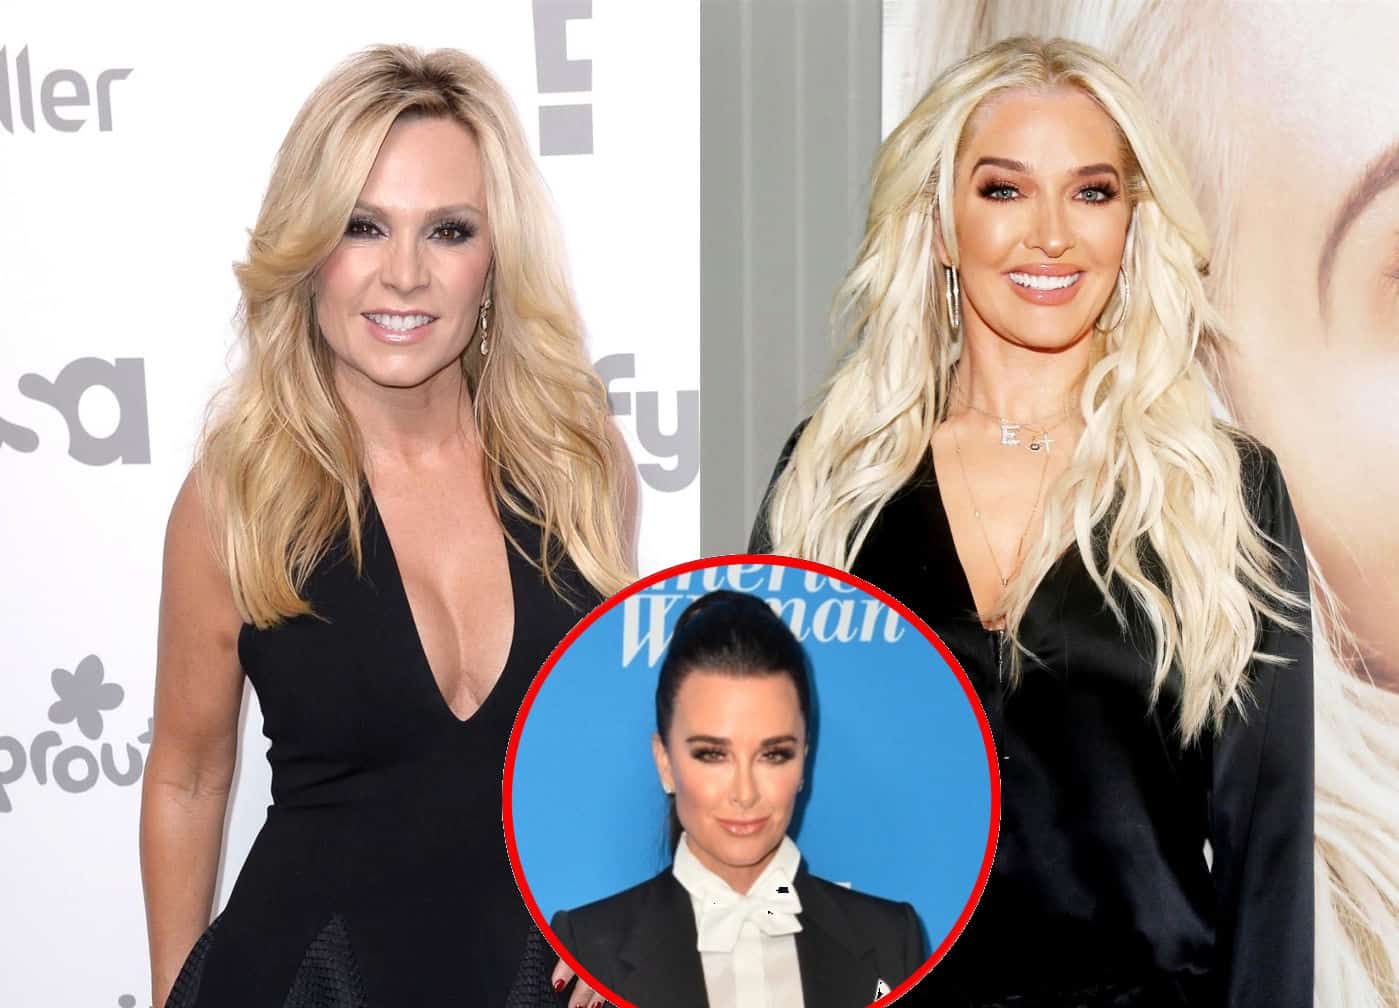 """RHOC's Tamra Judge Says Erika Jayne is """"In Trouble"""" and Reacts to Her Cheating Claims Against Husband Tom, Plus She Shares Thoughts On Kyle Richards' """"Vile"""" Label and Gushes Over Dorit"""